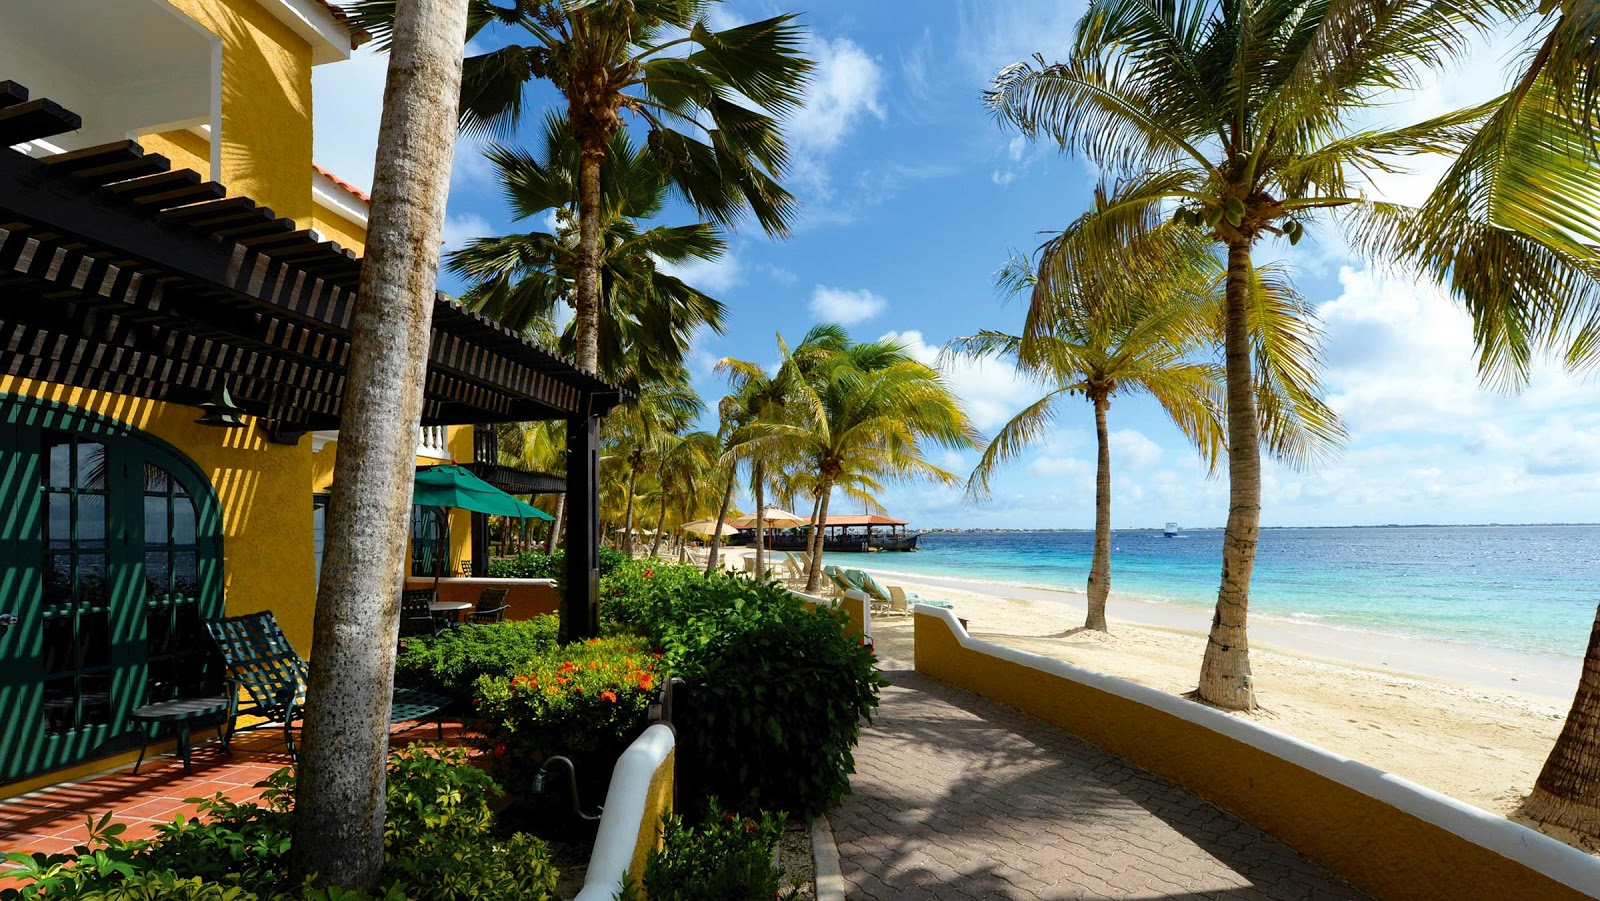 Travel 2 The Caribbean Blog Bonaire Luxury Valentines